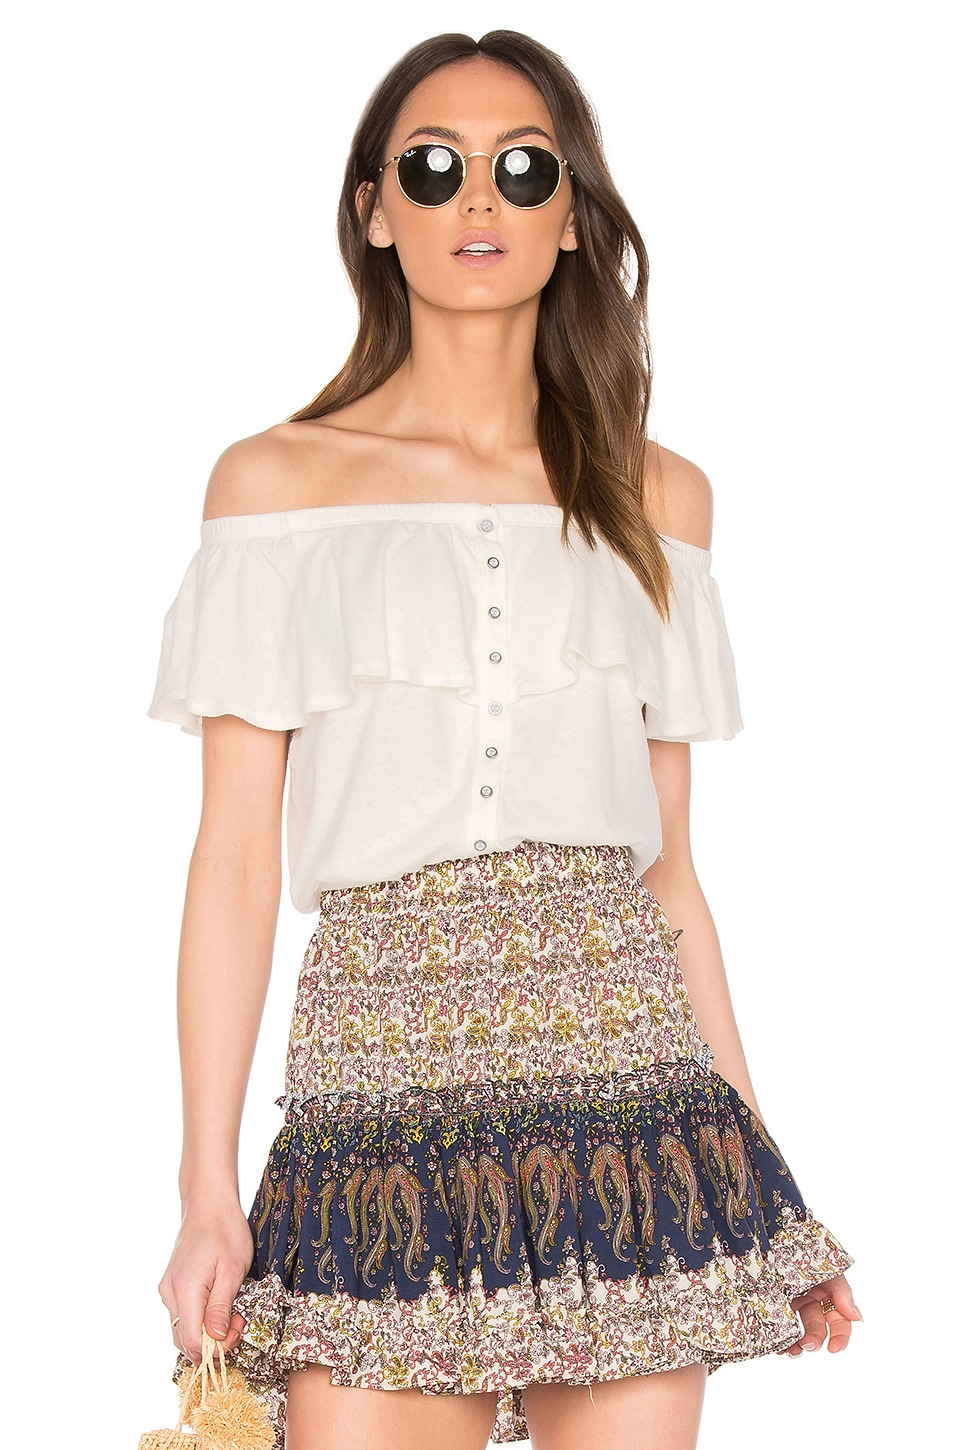 Free People Love Letter Tube Top in Ivory